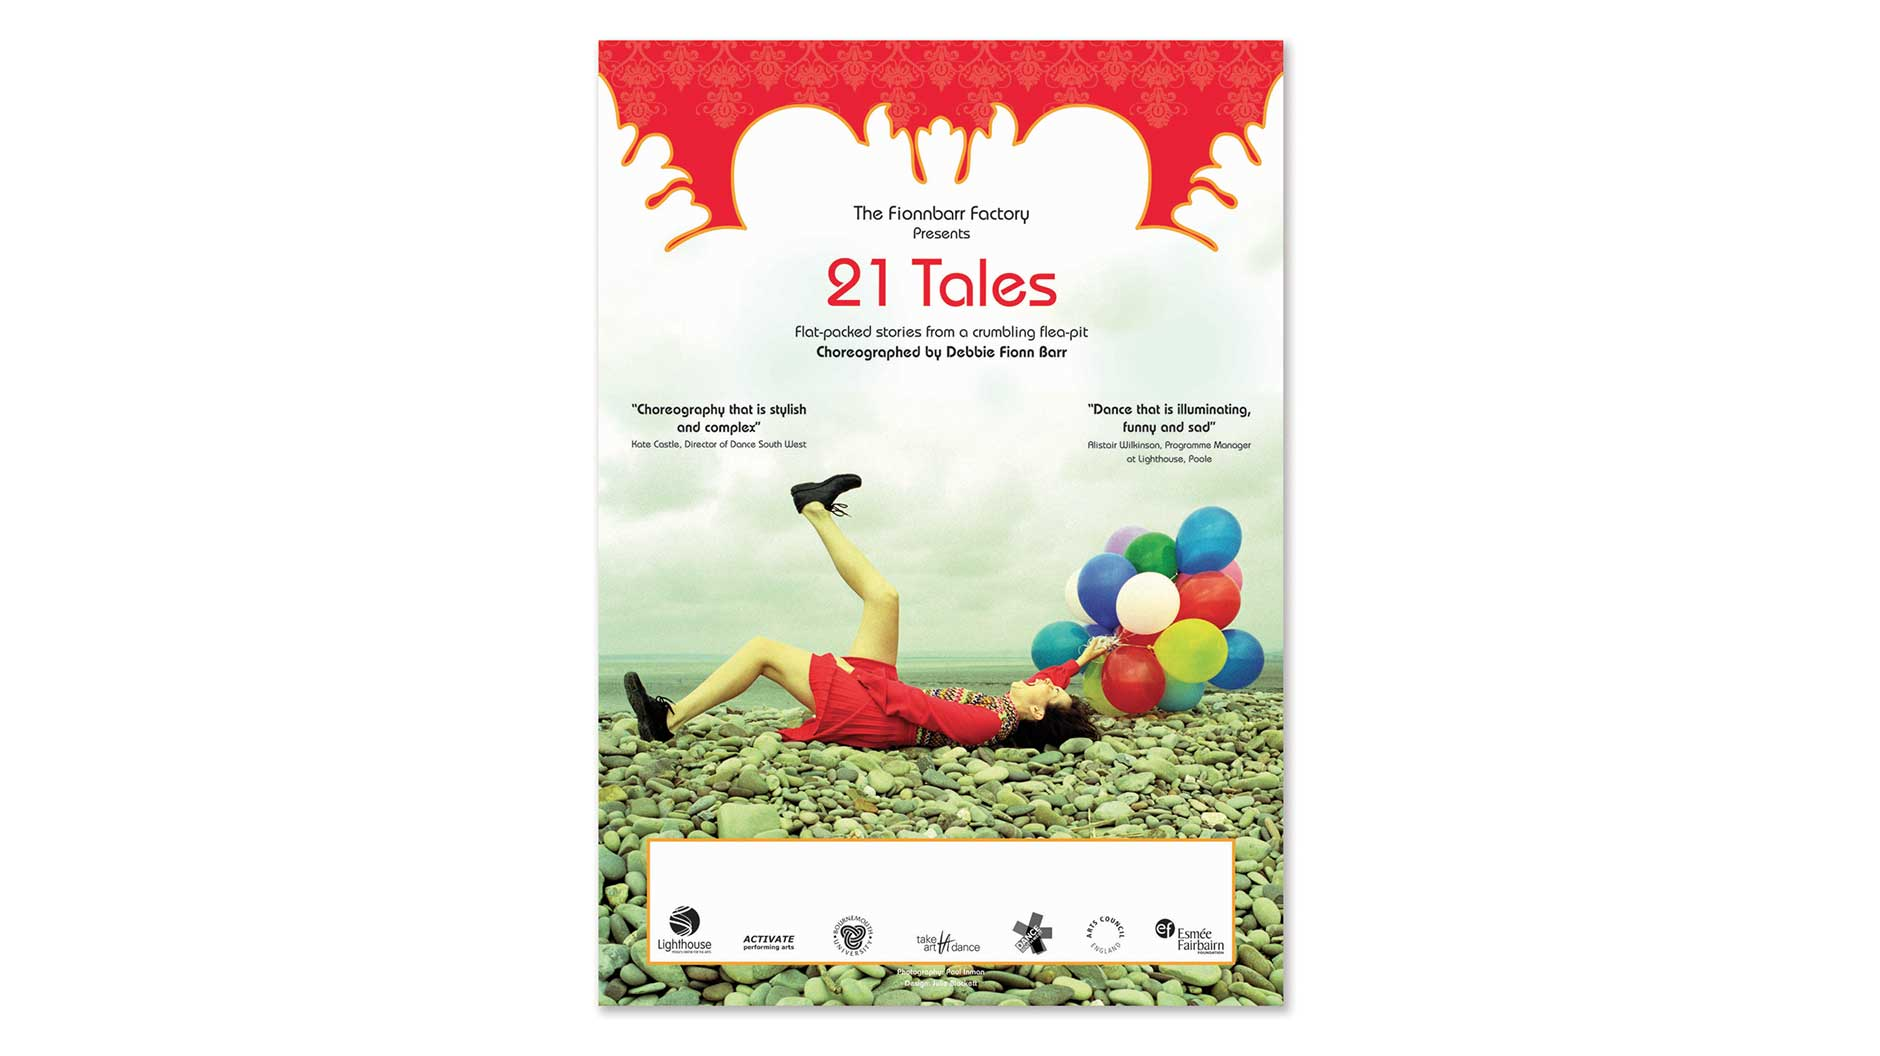 21 Tales poster design